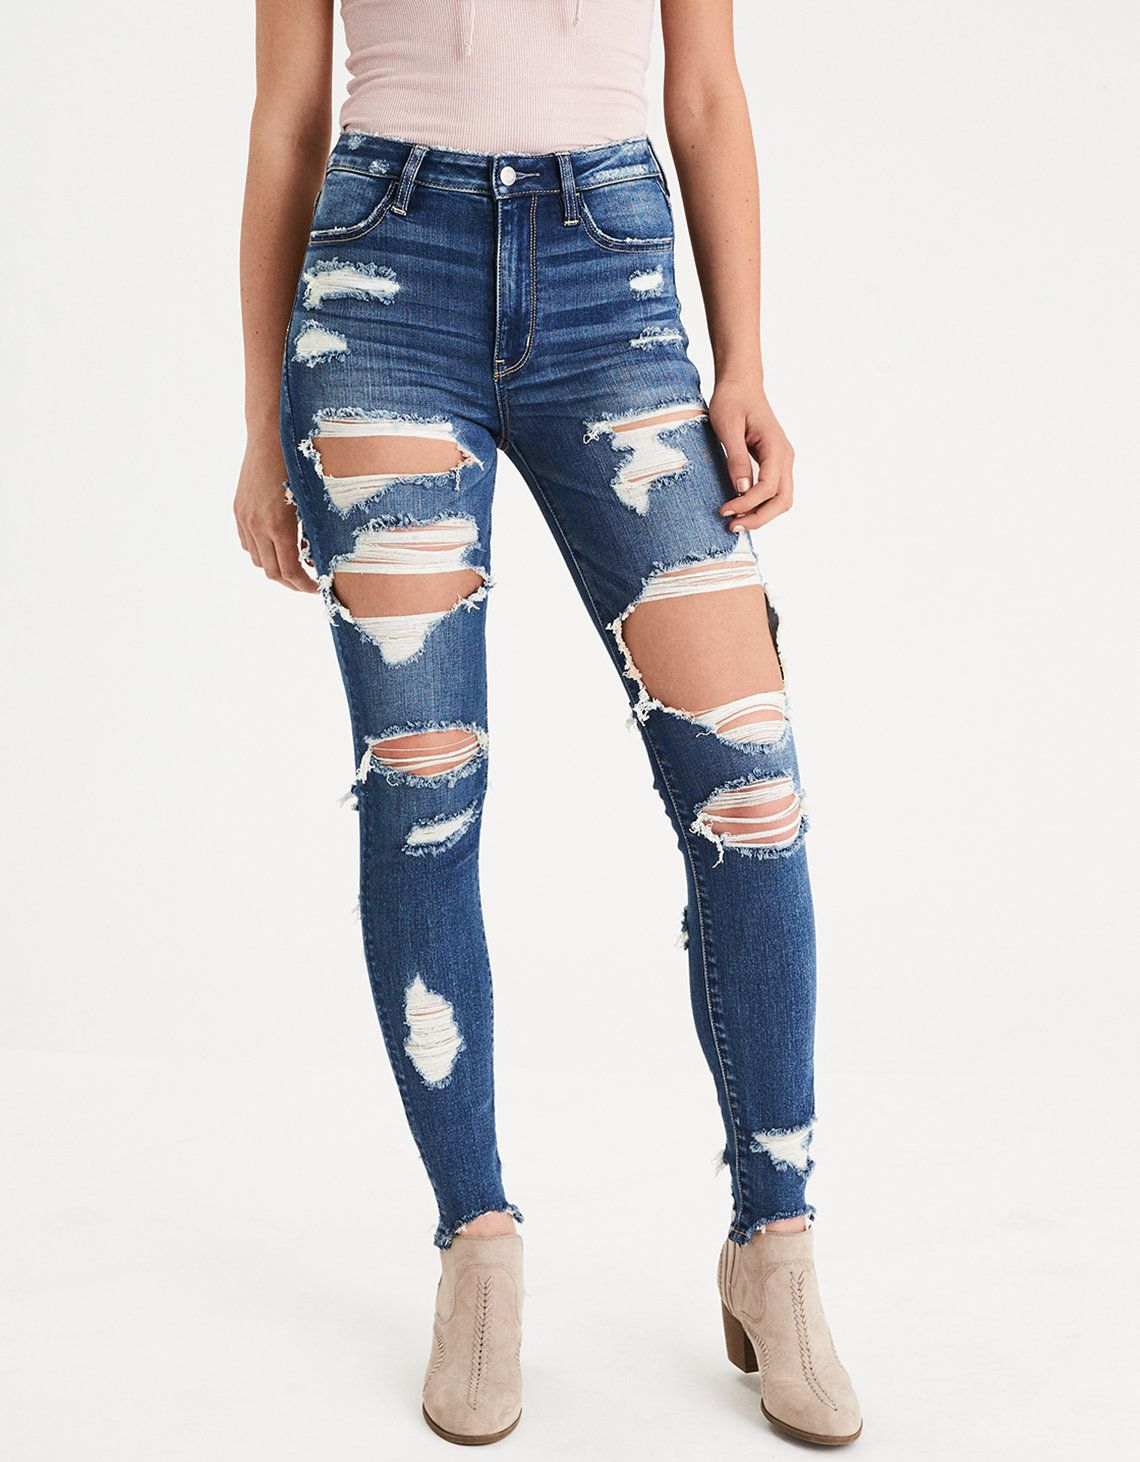 689ab94347 AEO DENIM X SUPER HI-RISE JEGGING - shredder indigo - $69.95 | 18th ...